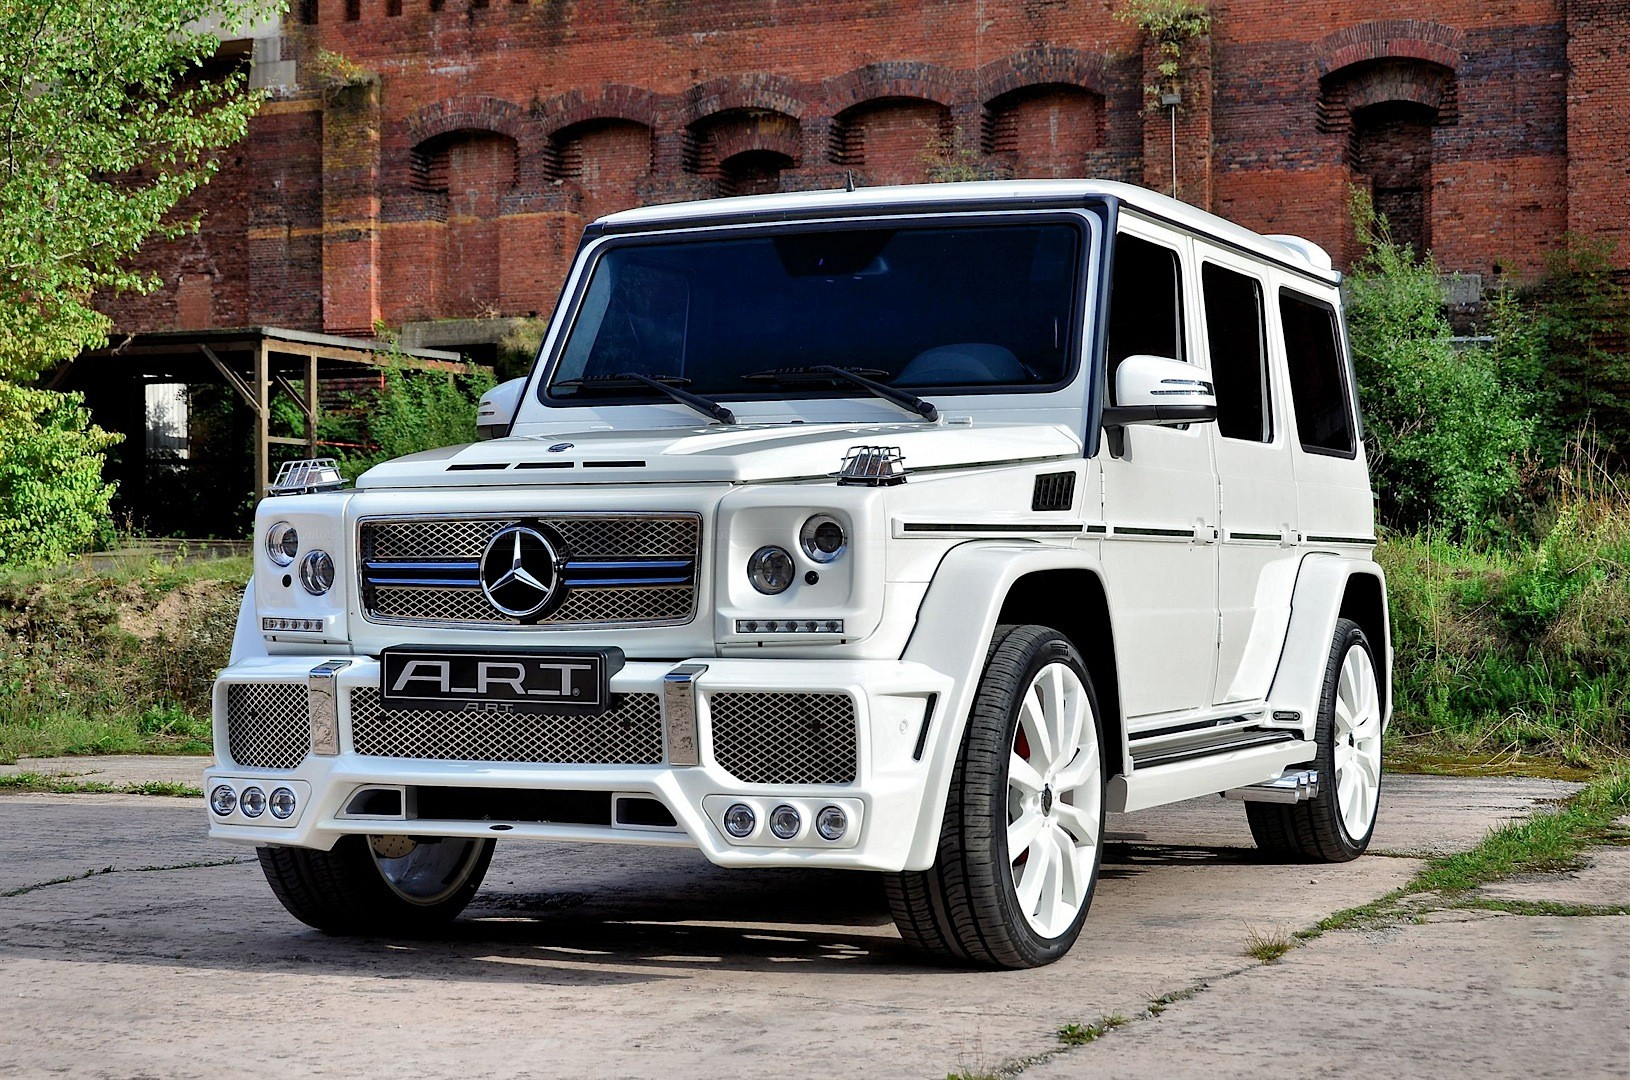 mercedes g class by a r t is brutally ugly packs 750 hp in 65 amg form autoevolution. Black Bedroom Furniture Sets. Home Design Ideas